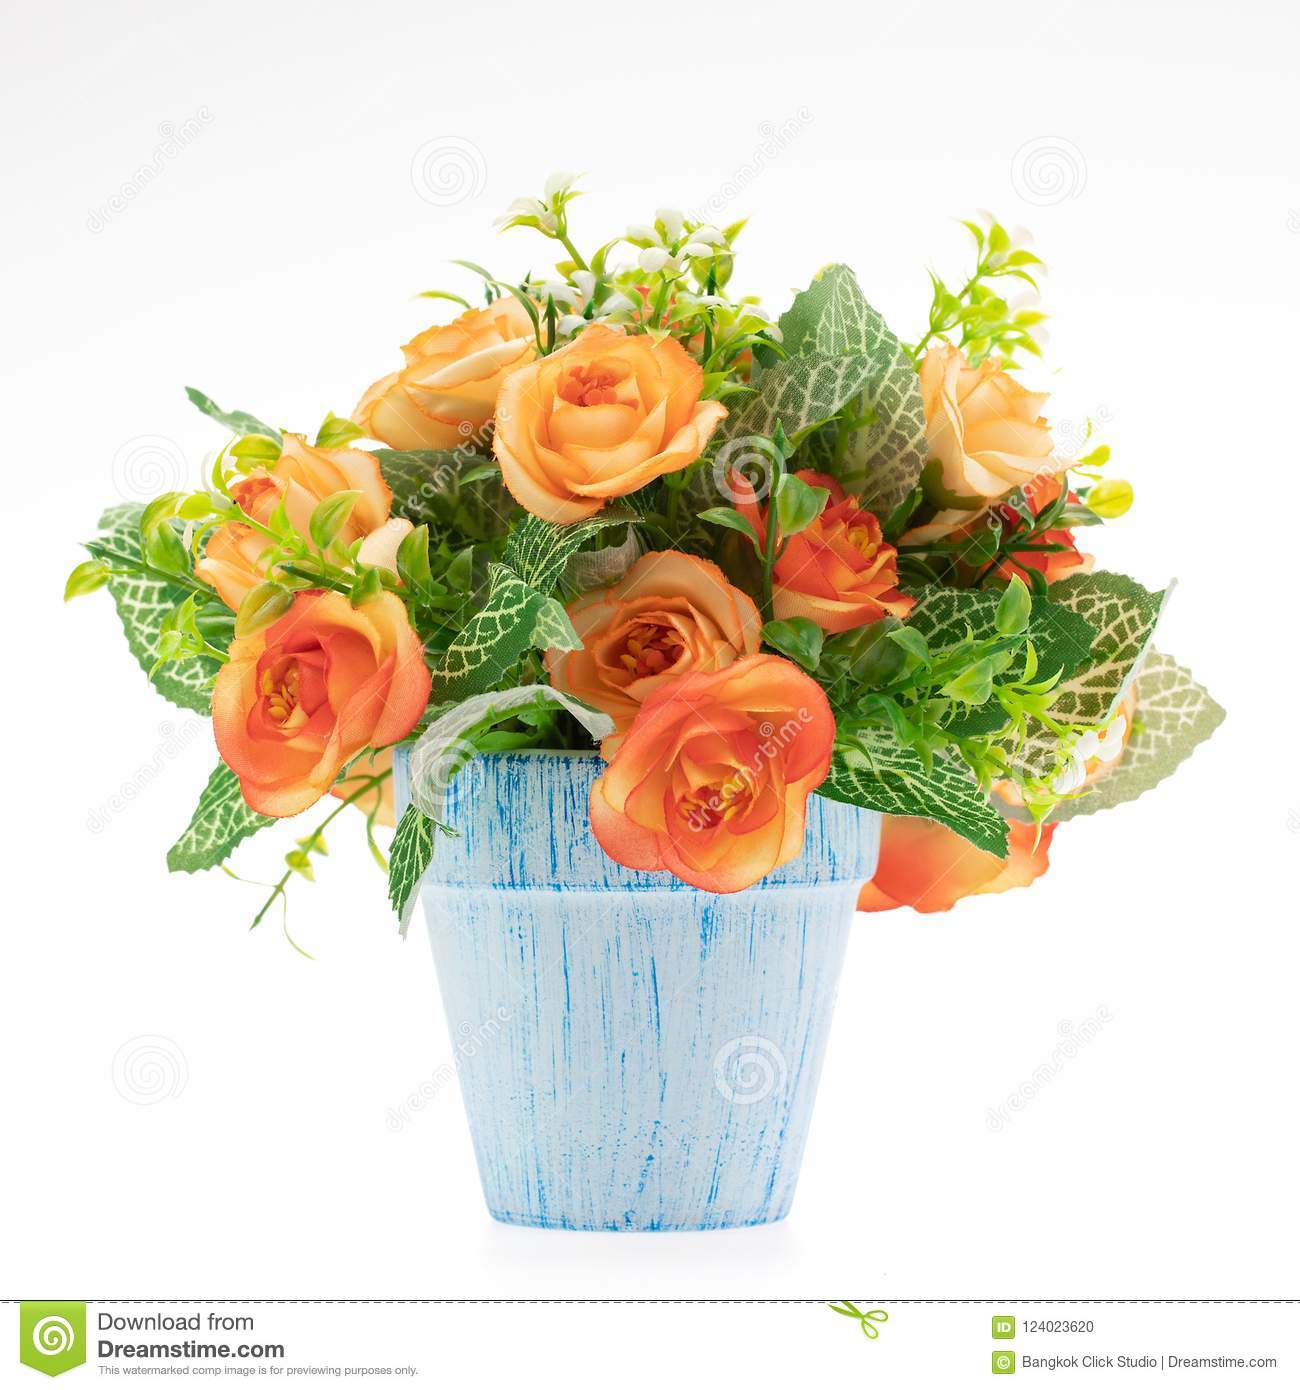 Colorful Fake Flower Handcraft From Cloth In Vase For Decoration Stock Photo Image Of Artificial Hand 124023620